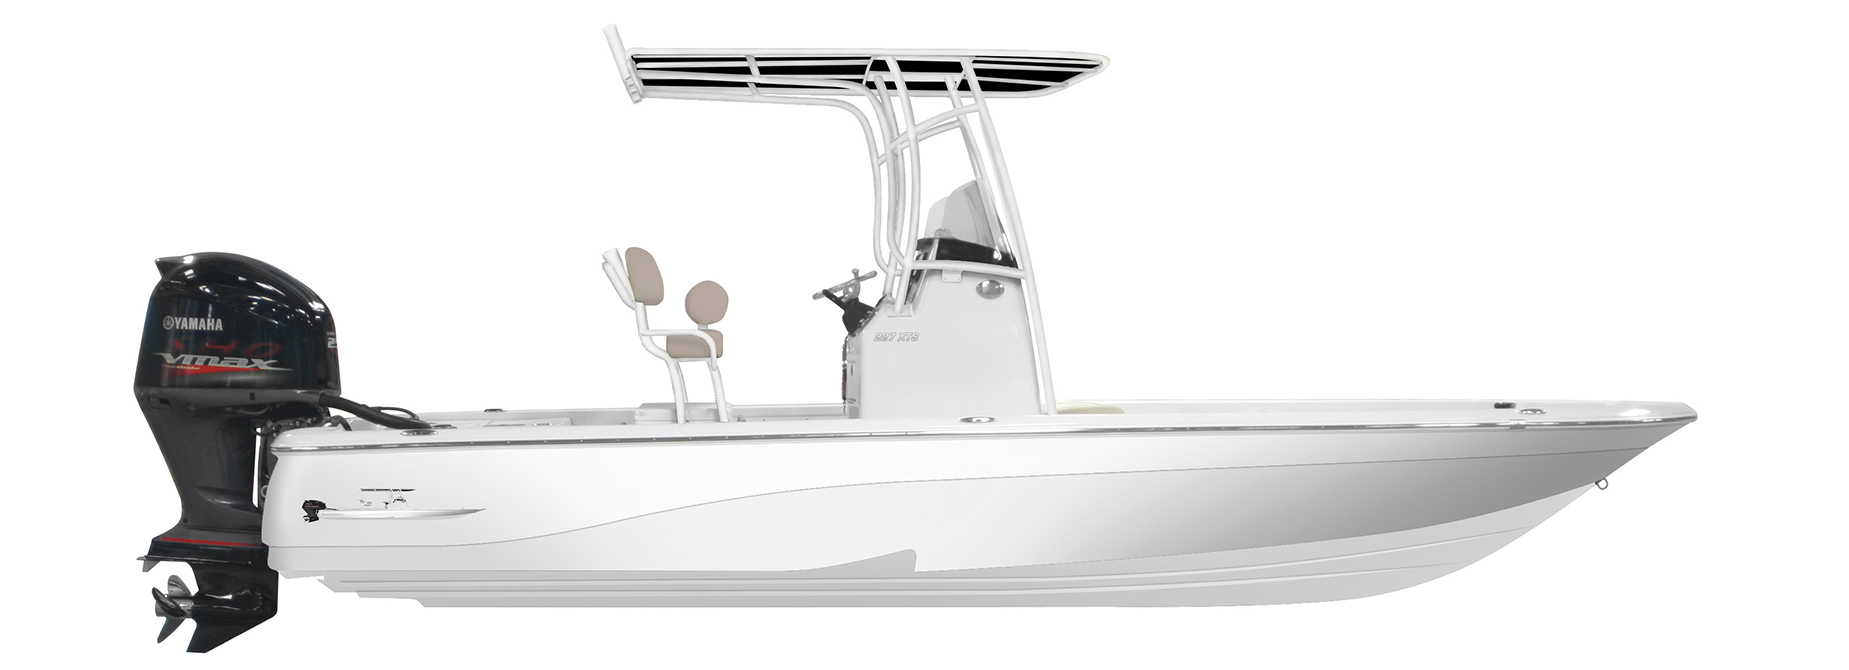 Side Profile Rendering of a 227XTS NauticStar Boat